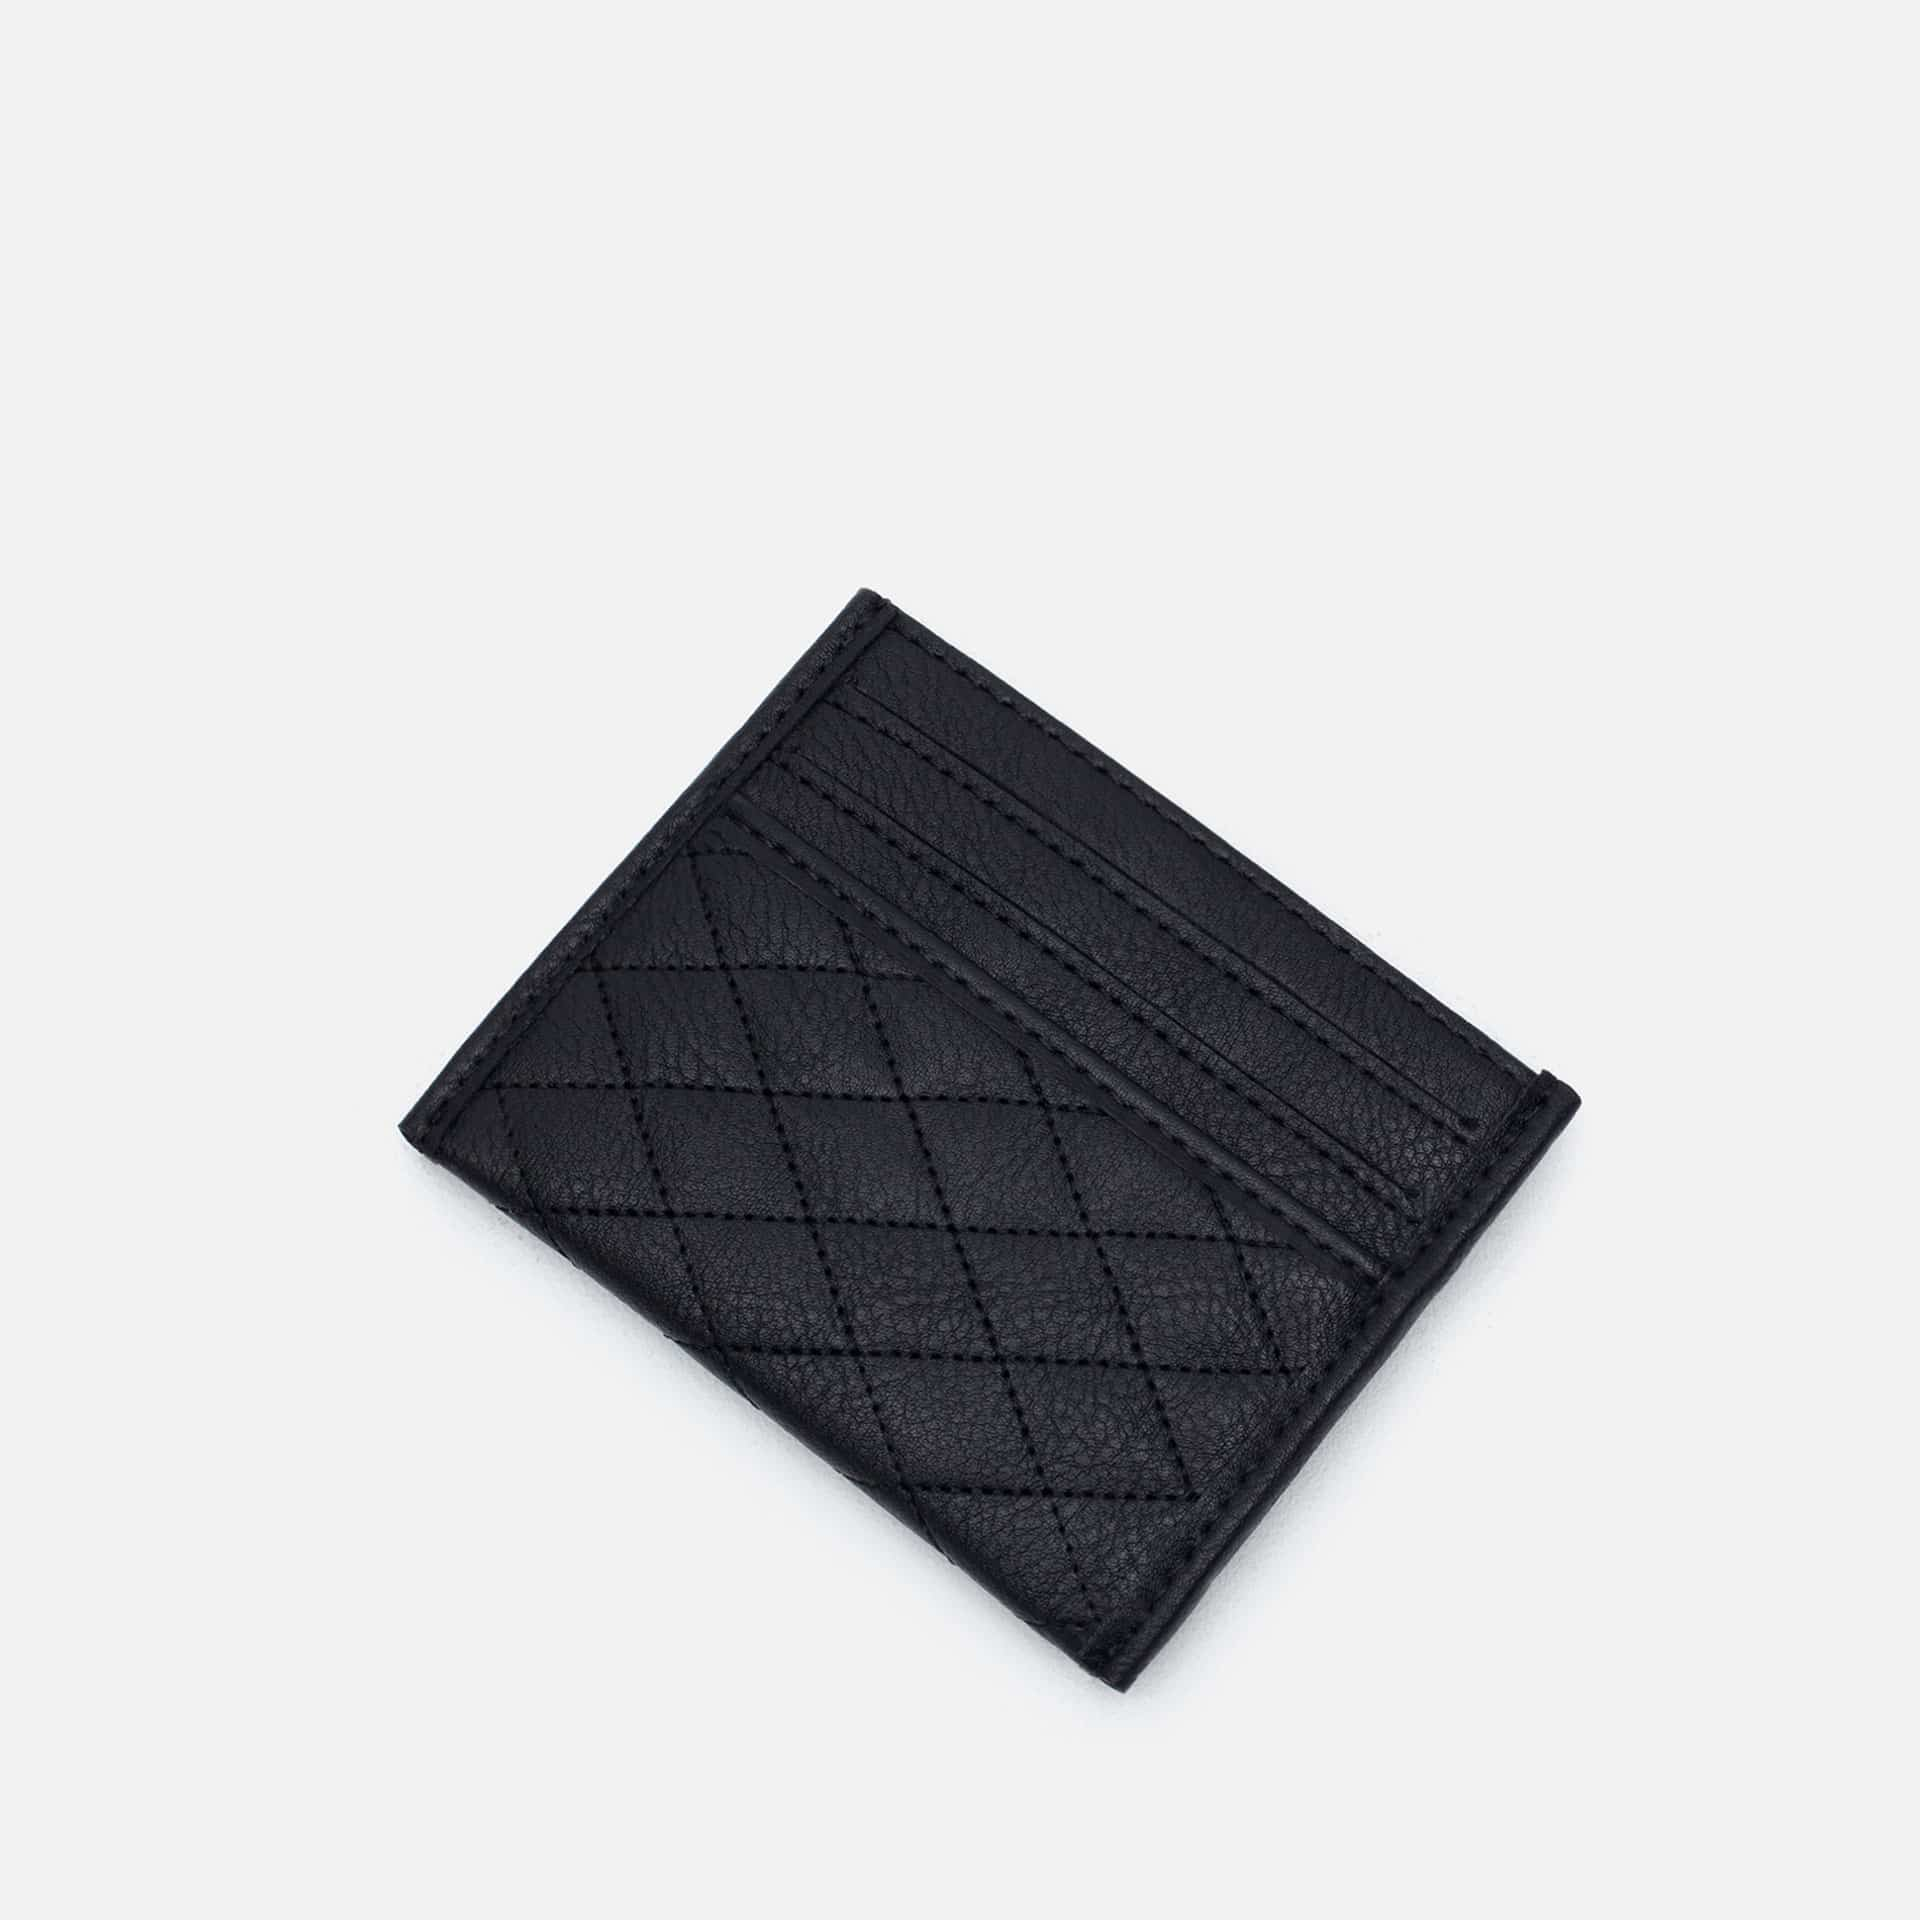 Buy Zara Men Quilted Business Card Holder Black [6610 005